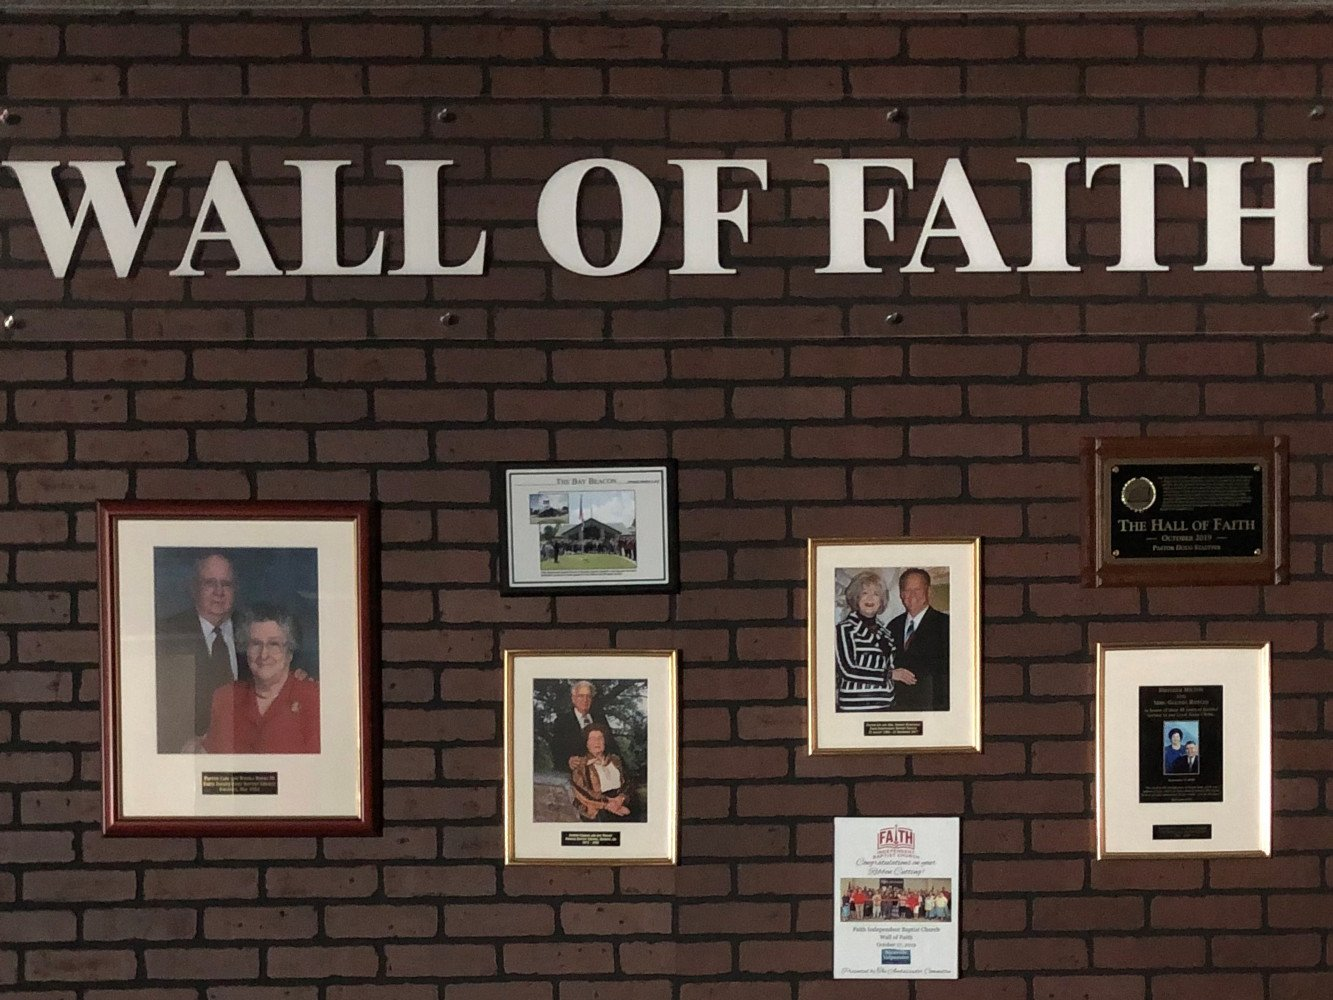 Wall of Faith in the Hall of Faith